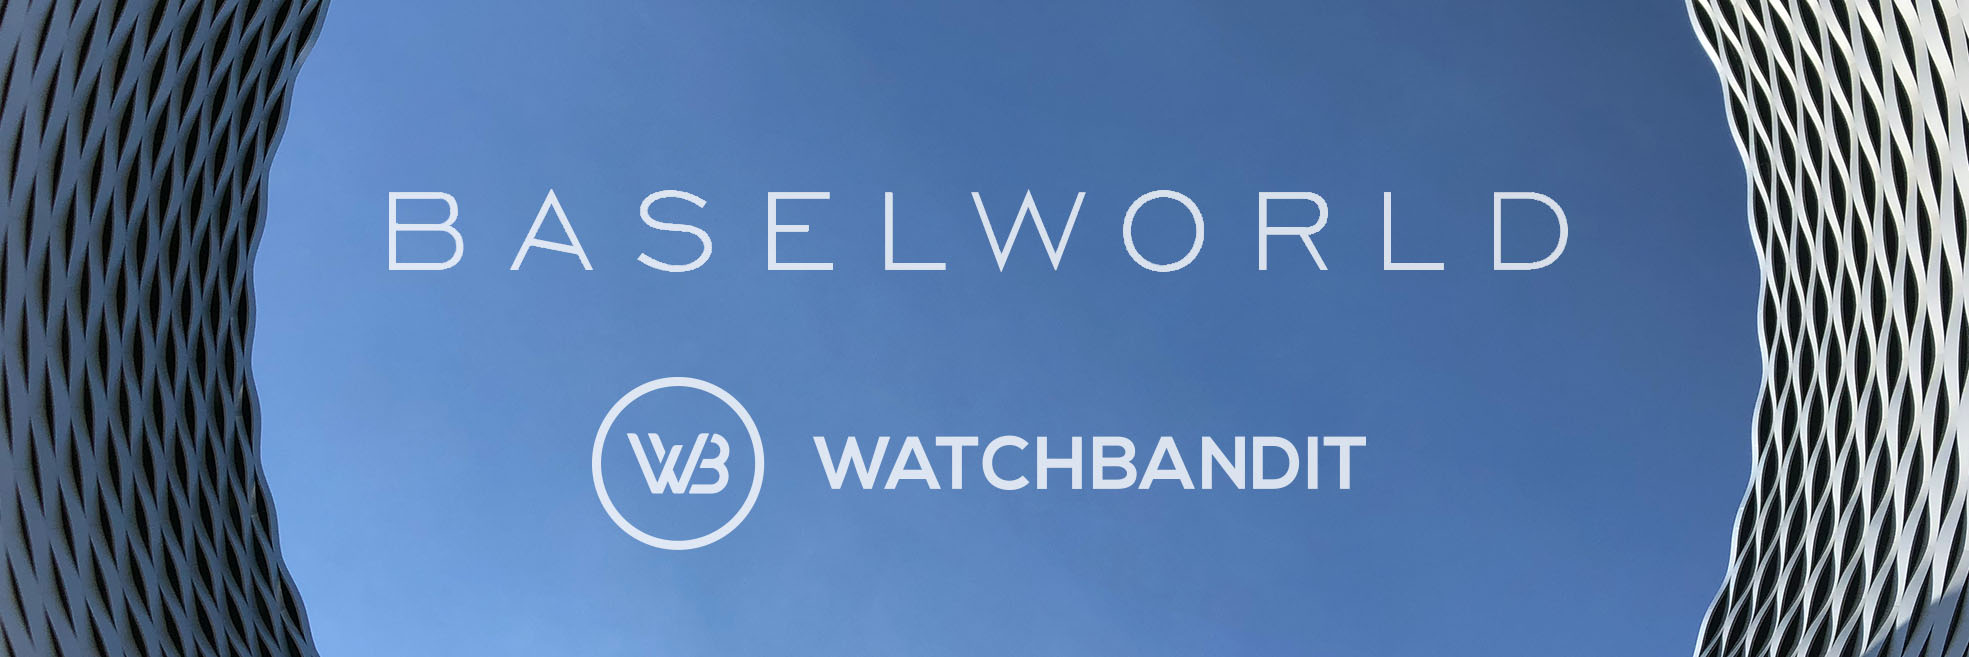 Baselworld_WatchBadnit_Logo